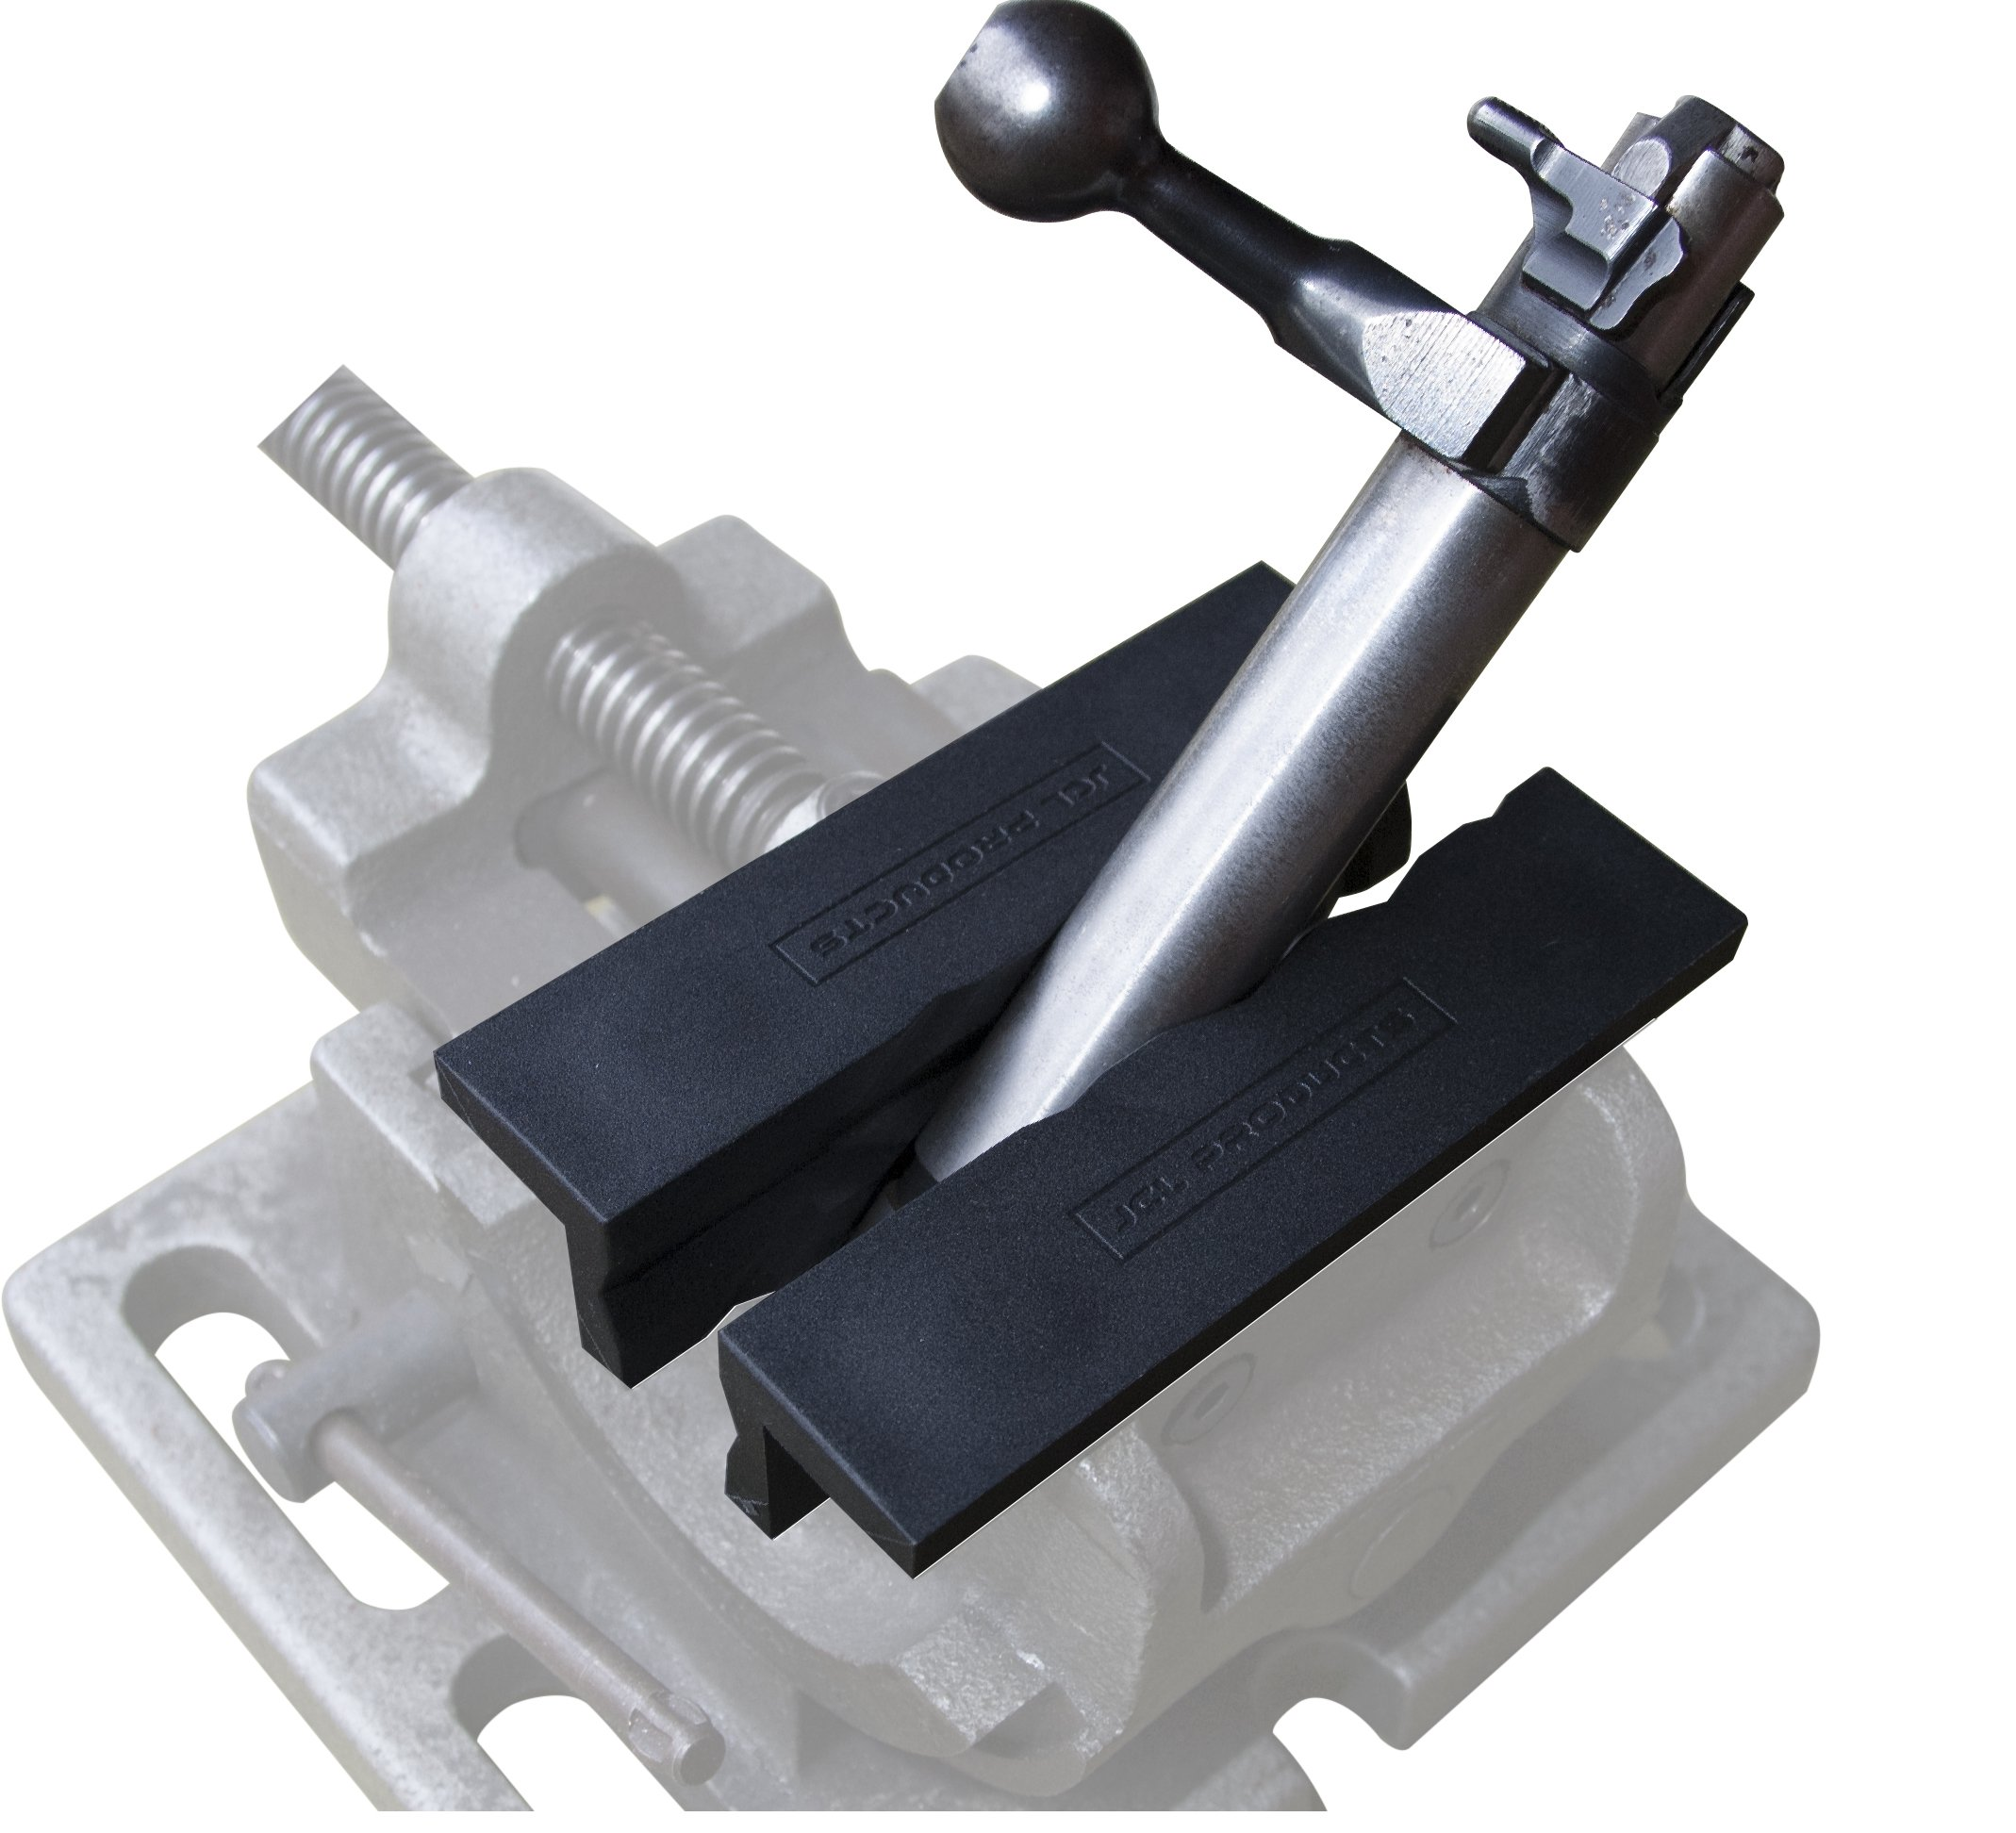 Vise Jaws - Nylon, Multipurpose 6'' - Use on any Metal Vise, Magnetic Reversible Pads (2 Sets in 1), Clamp Flat or Round Products - Available in 4'' or 6'' by JCL PRODUCTS (Image #4)